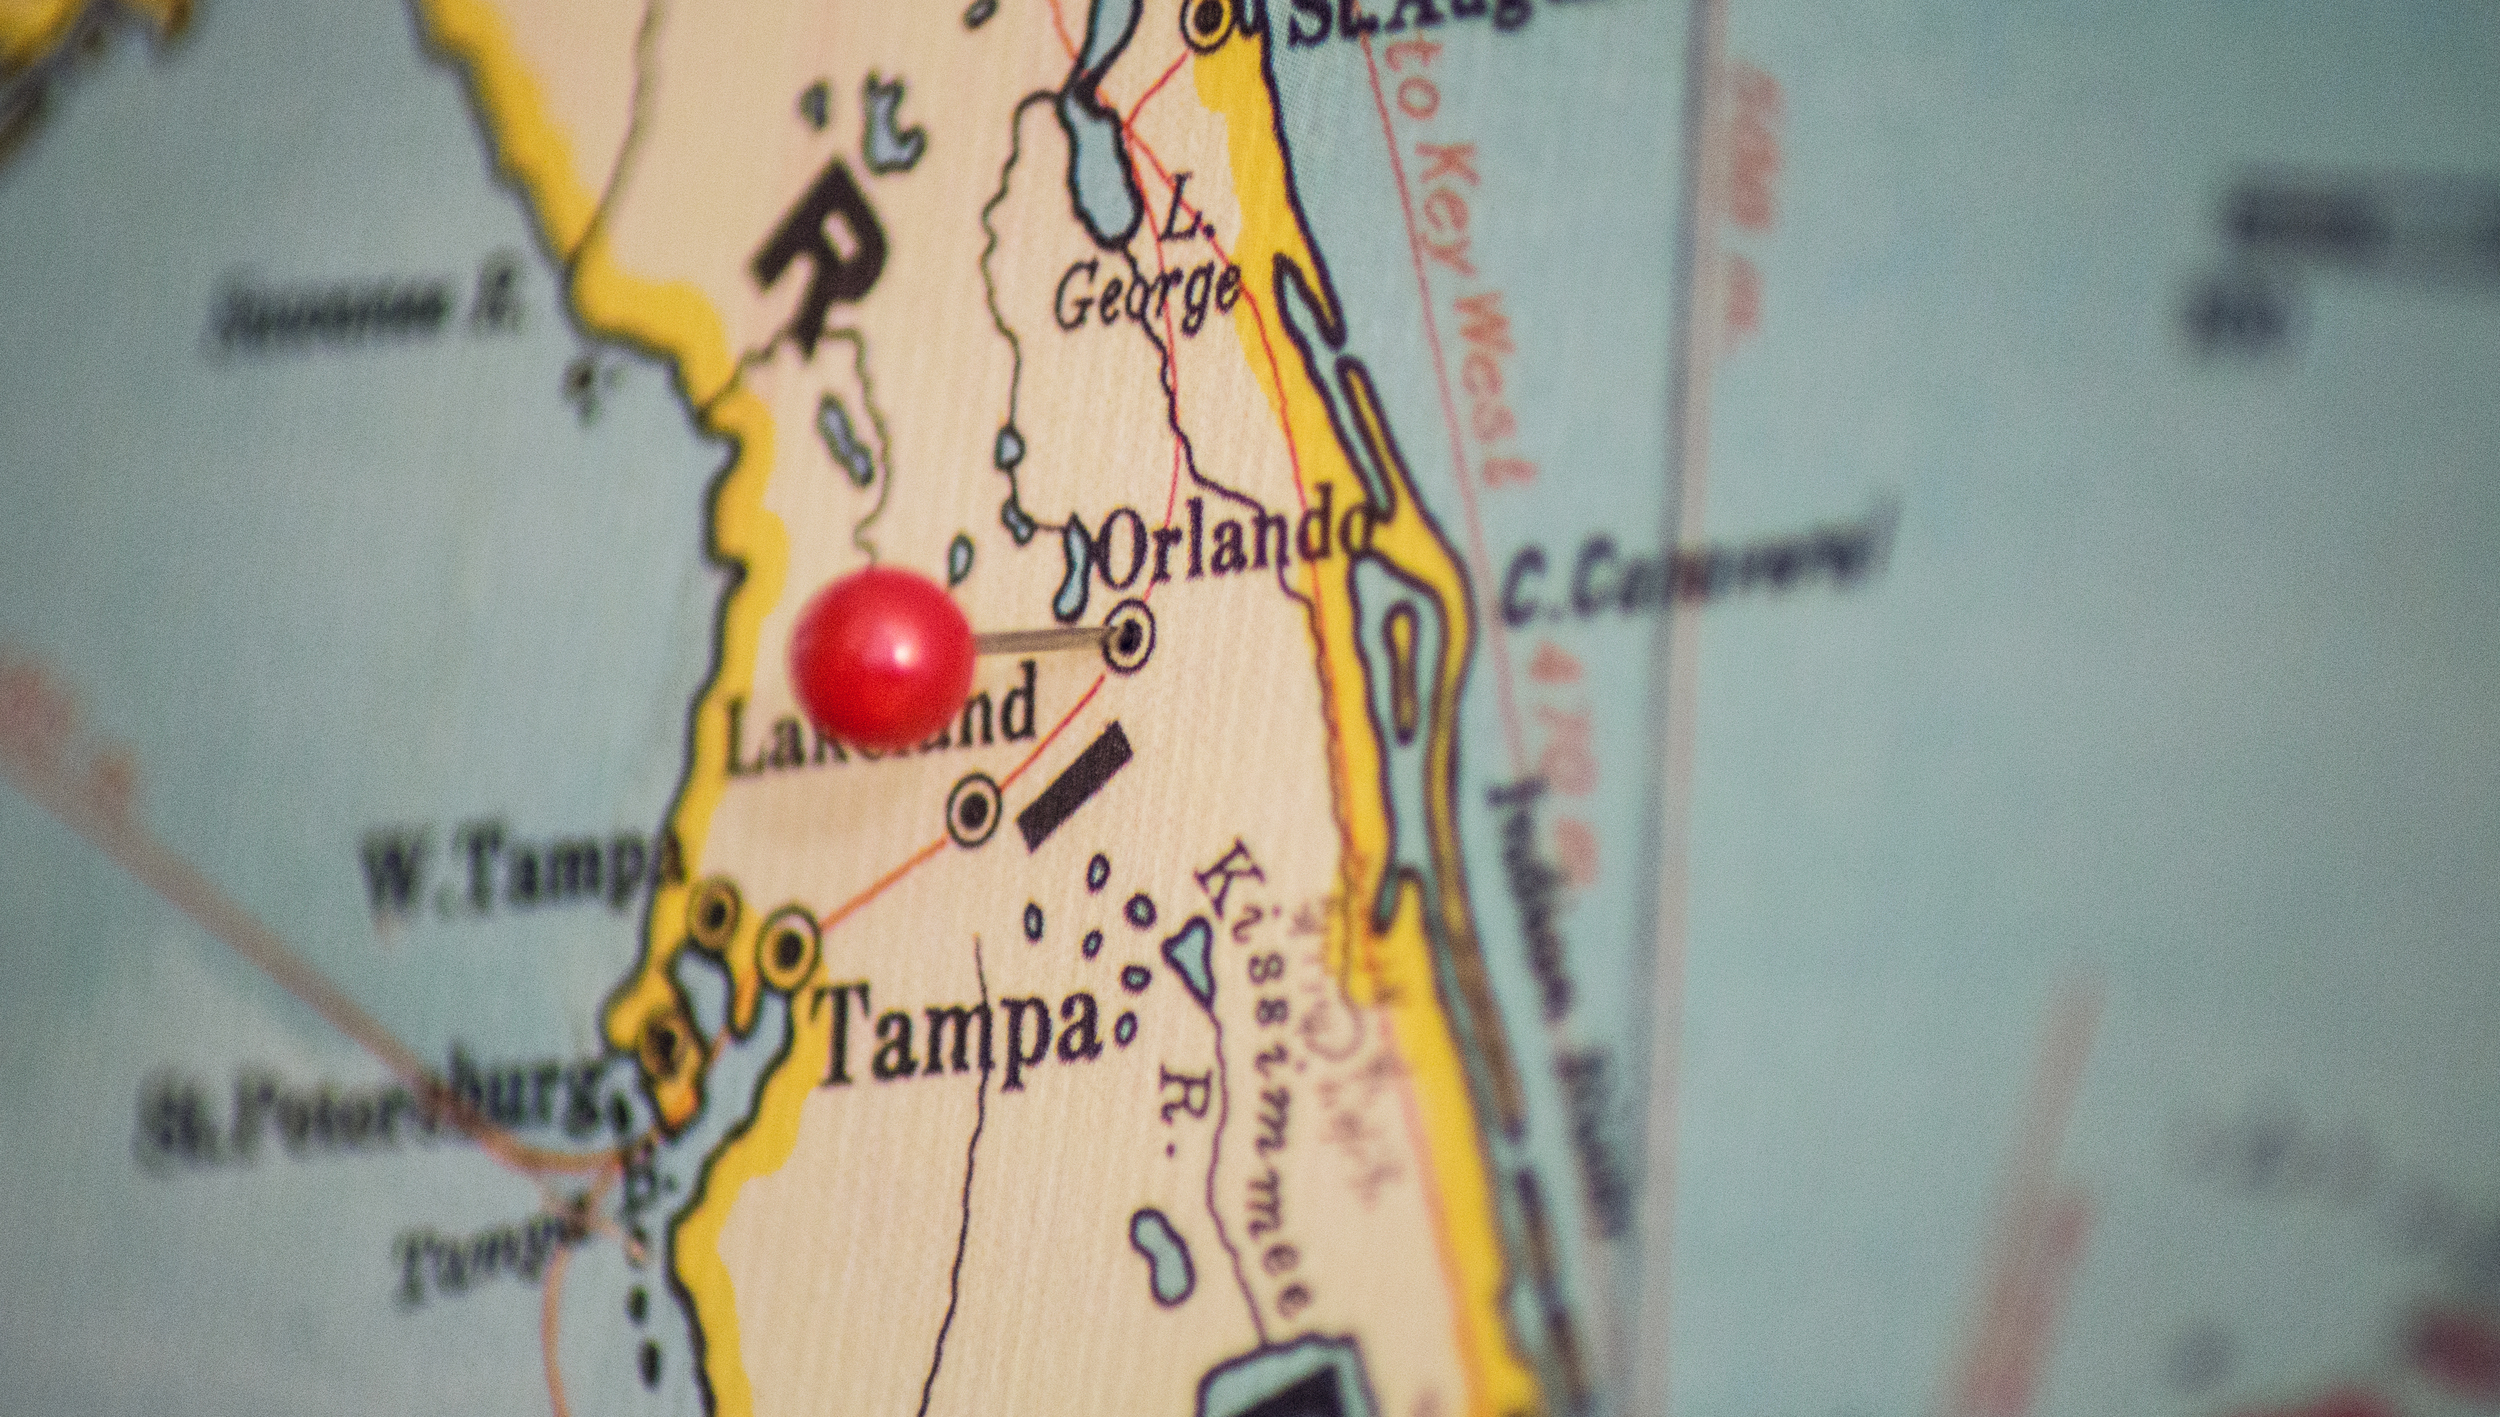 A new pin added to our map.